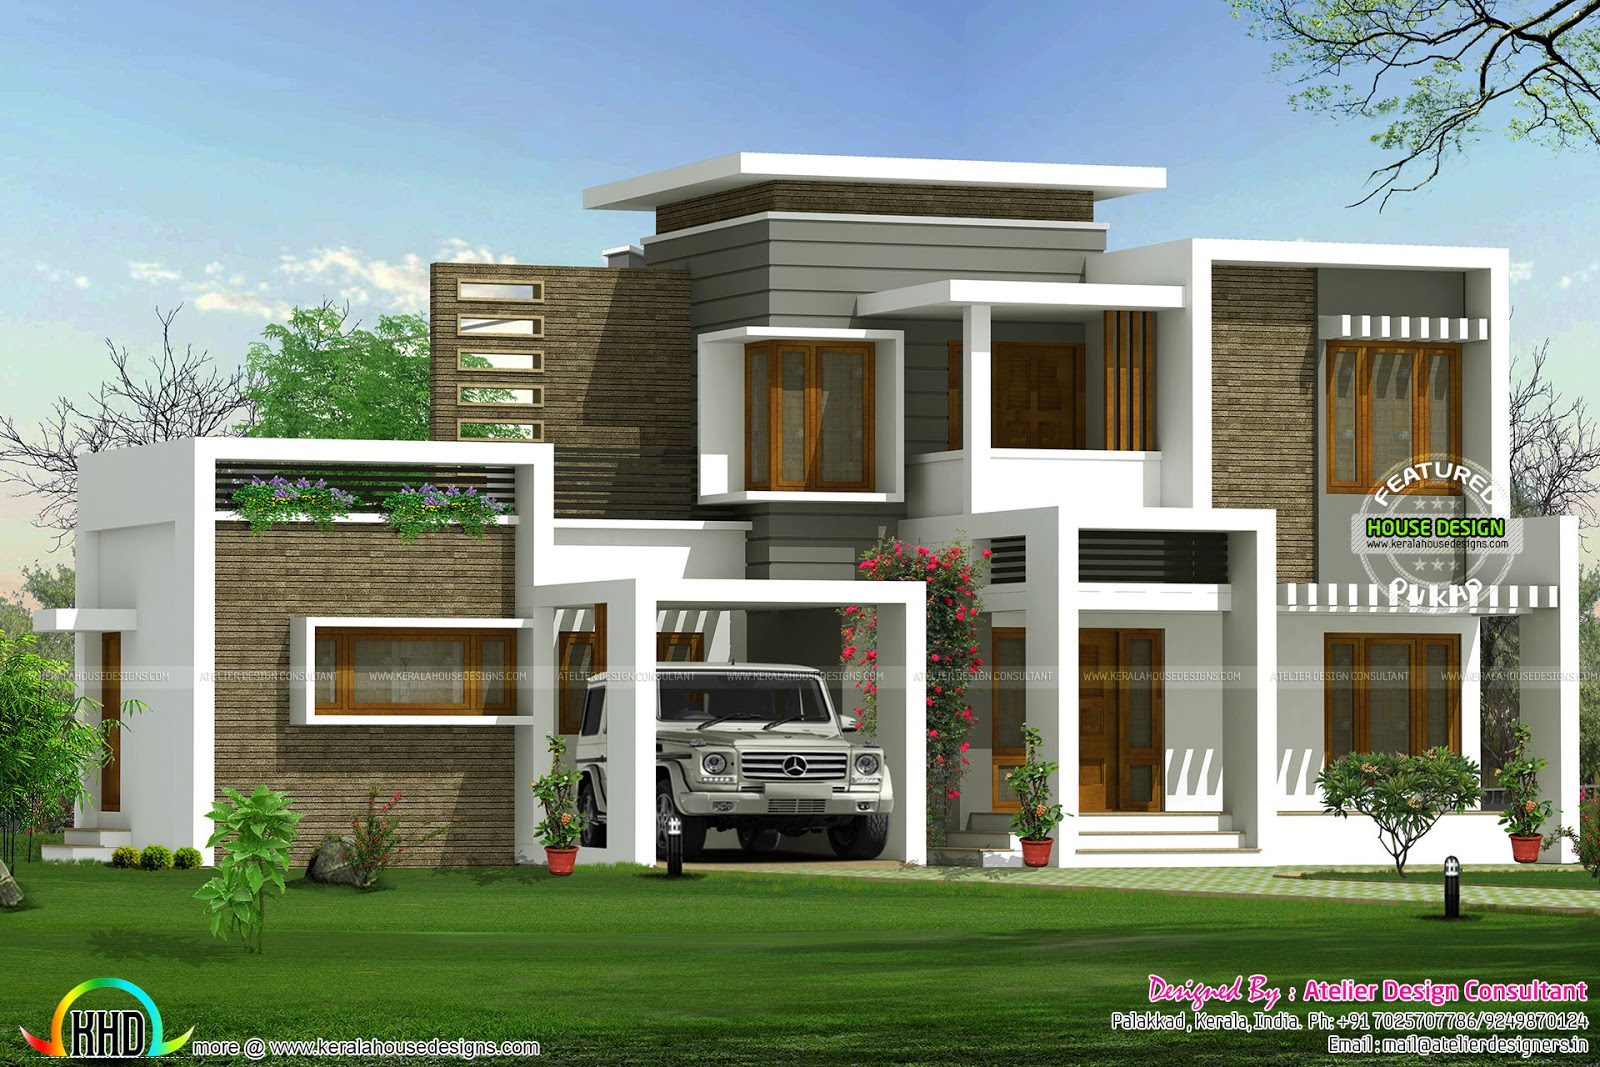 boxtype home contemporary - Download Single Storey Small Box Type House Design With Floor Plan Background